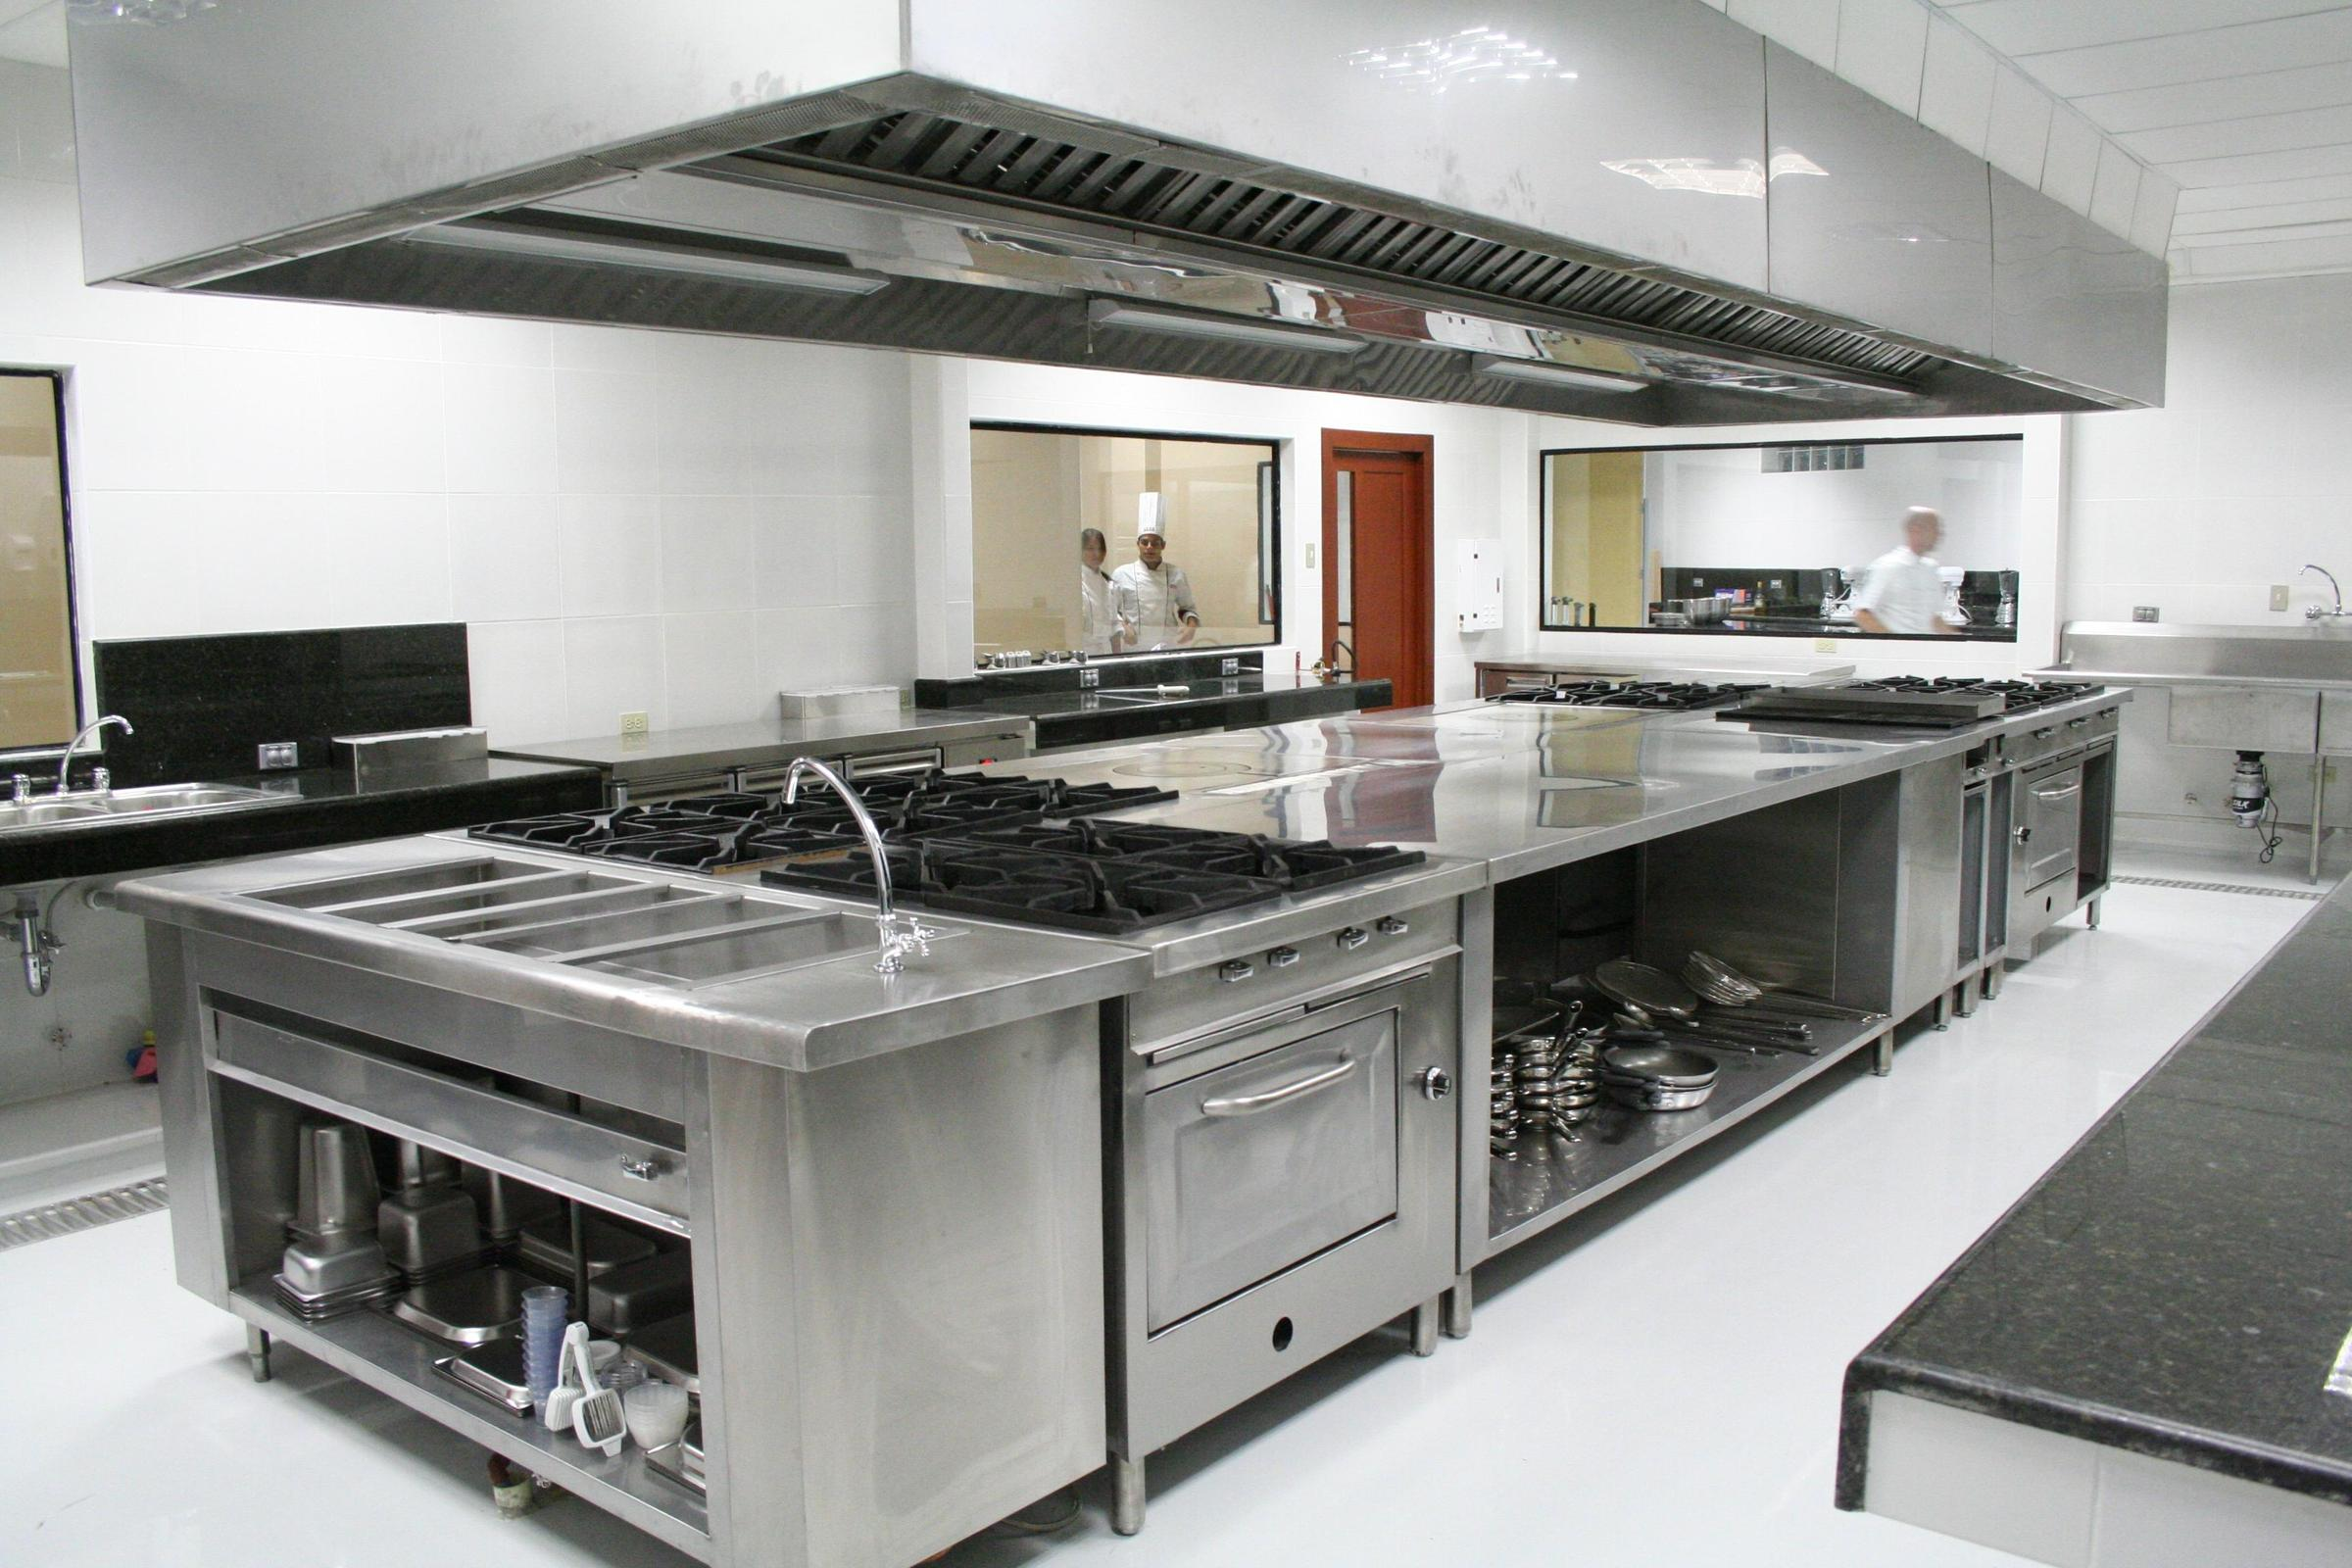 grant-funded commercial kitchen to cook up small business support